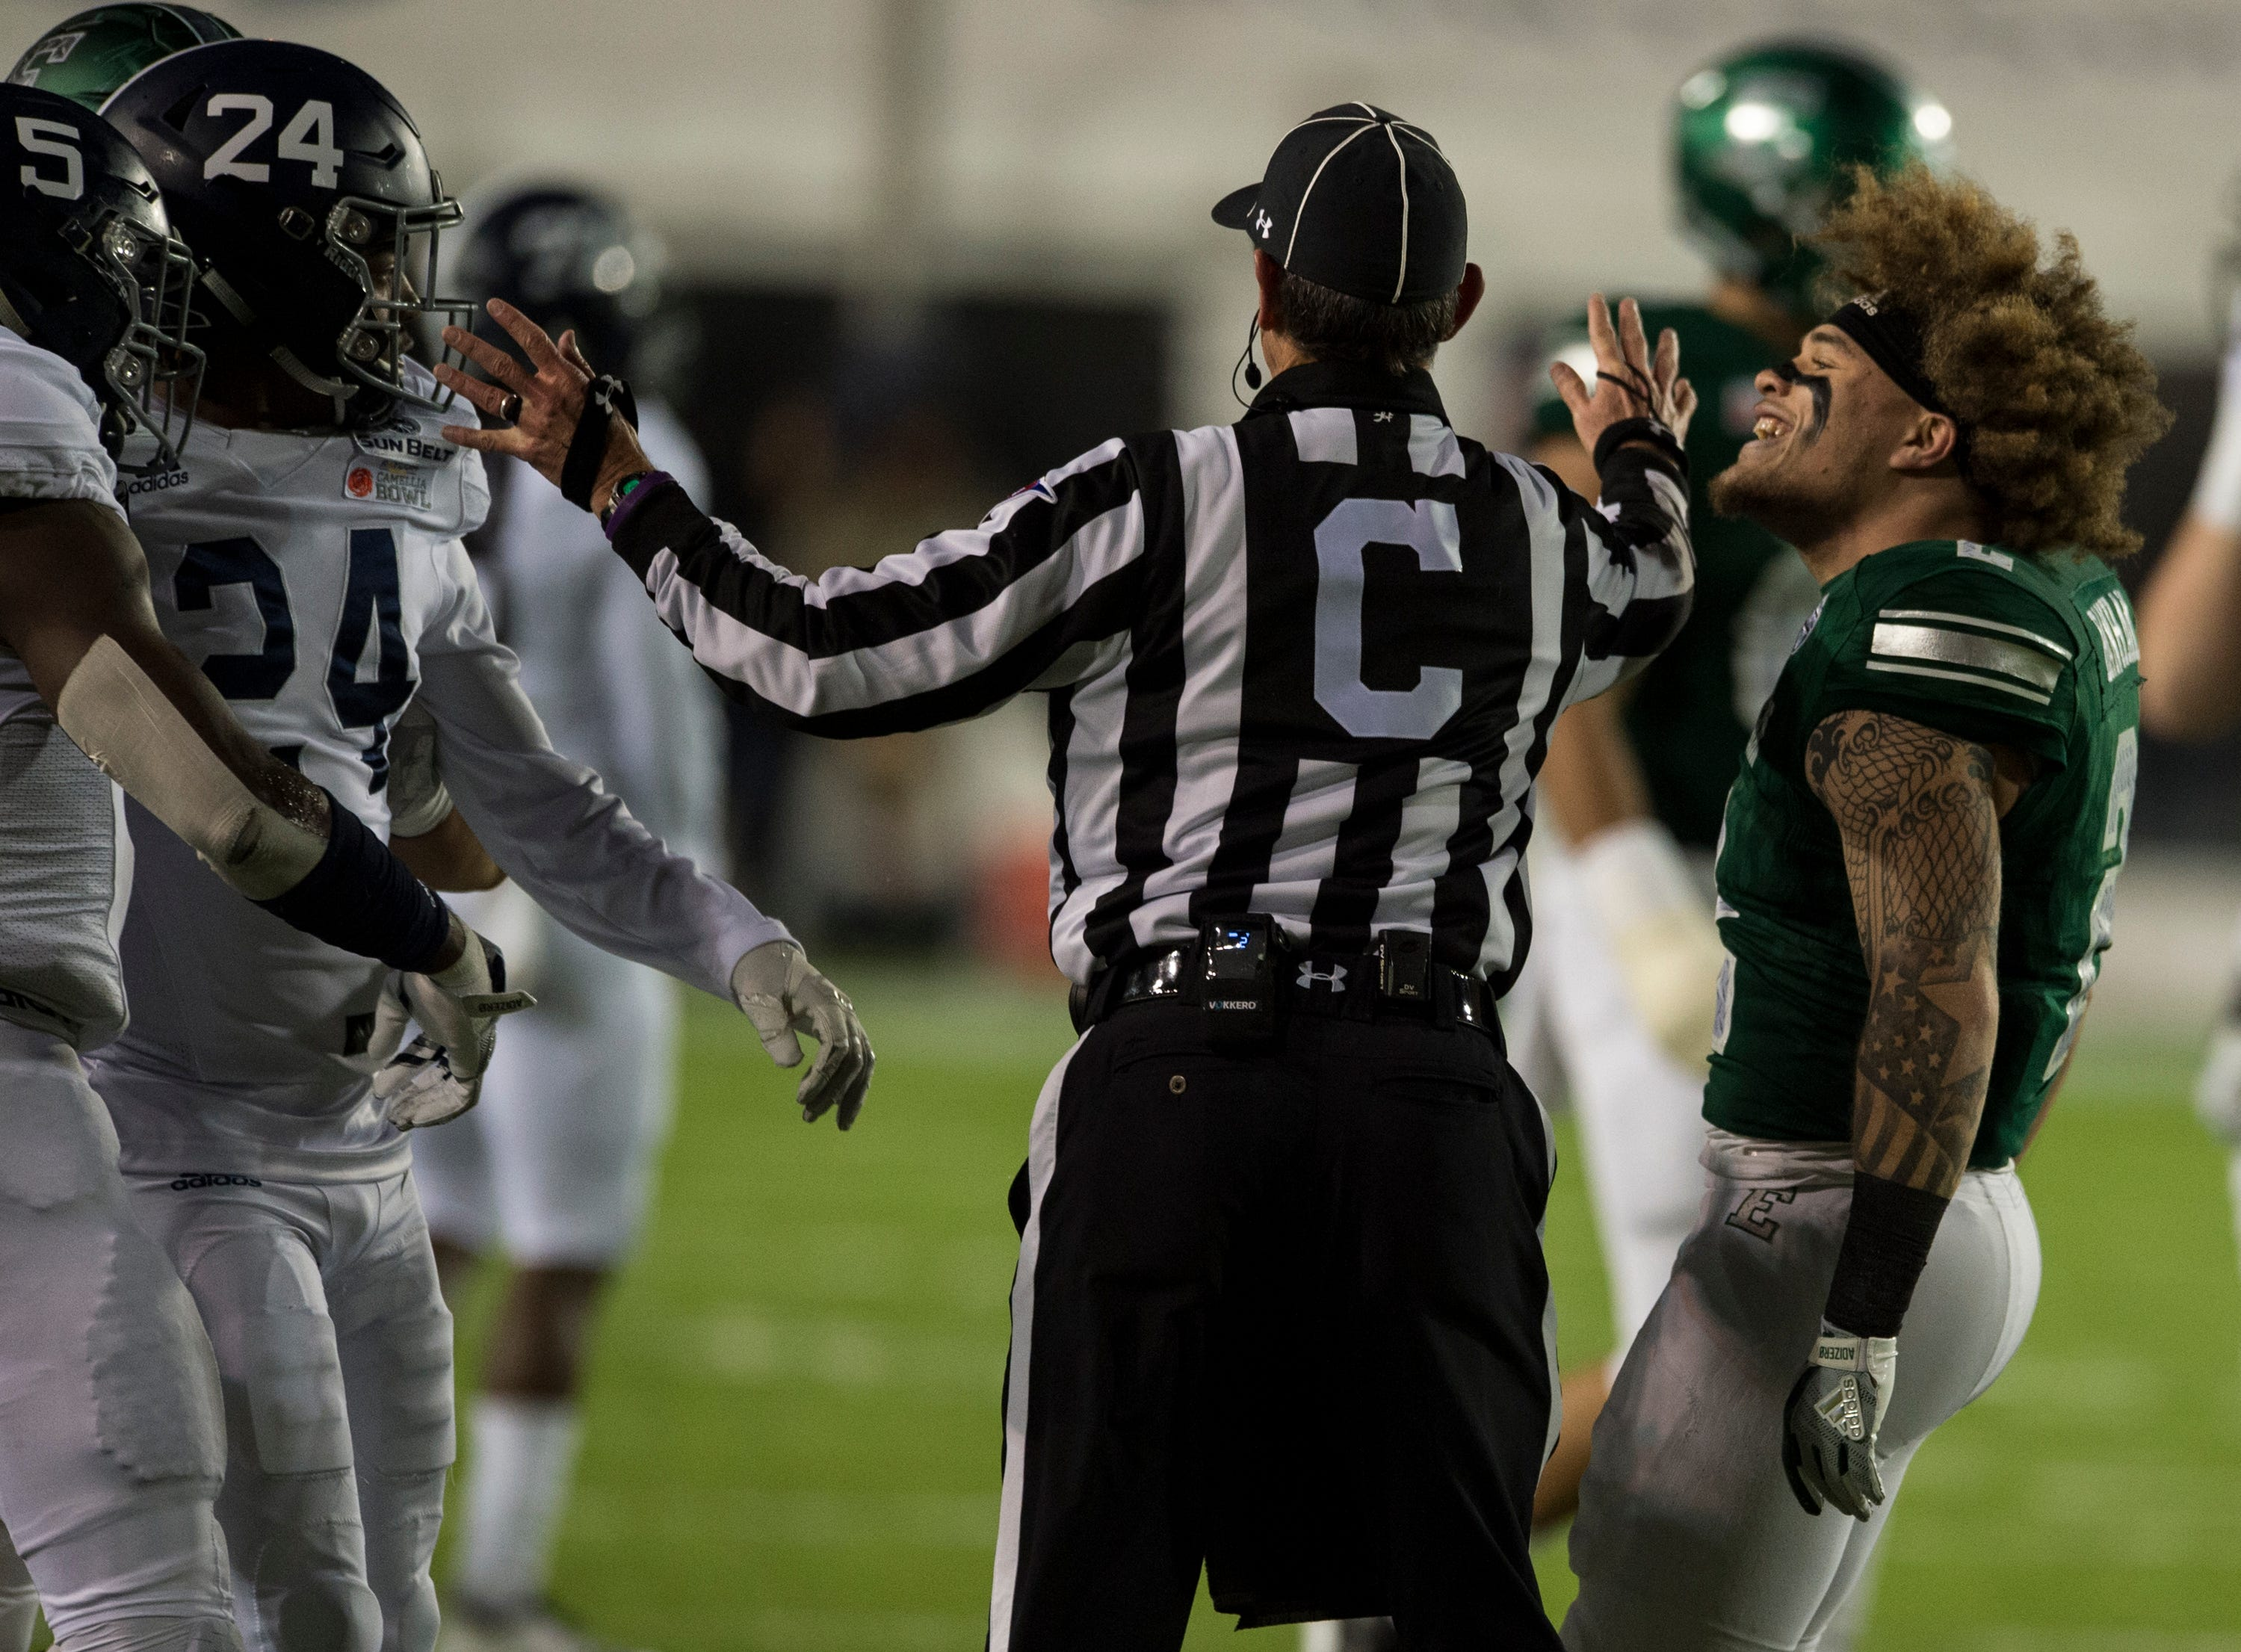 A referee breaks up a shoving match between Georgia Southern safety Jay Bowdry (5) and Eastern Michigan wide receiver Blake Banham (2) during the Camellia Bowl at Cramton Bowl in Montgomery, Ala., on Saturday, Dec. 15, 2018. Georgia Southern leads Eastern Michigan 17-7 at halftime.